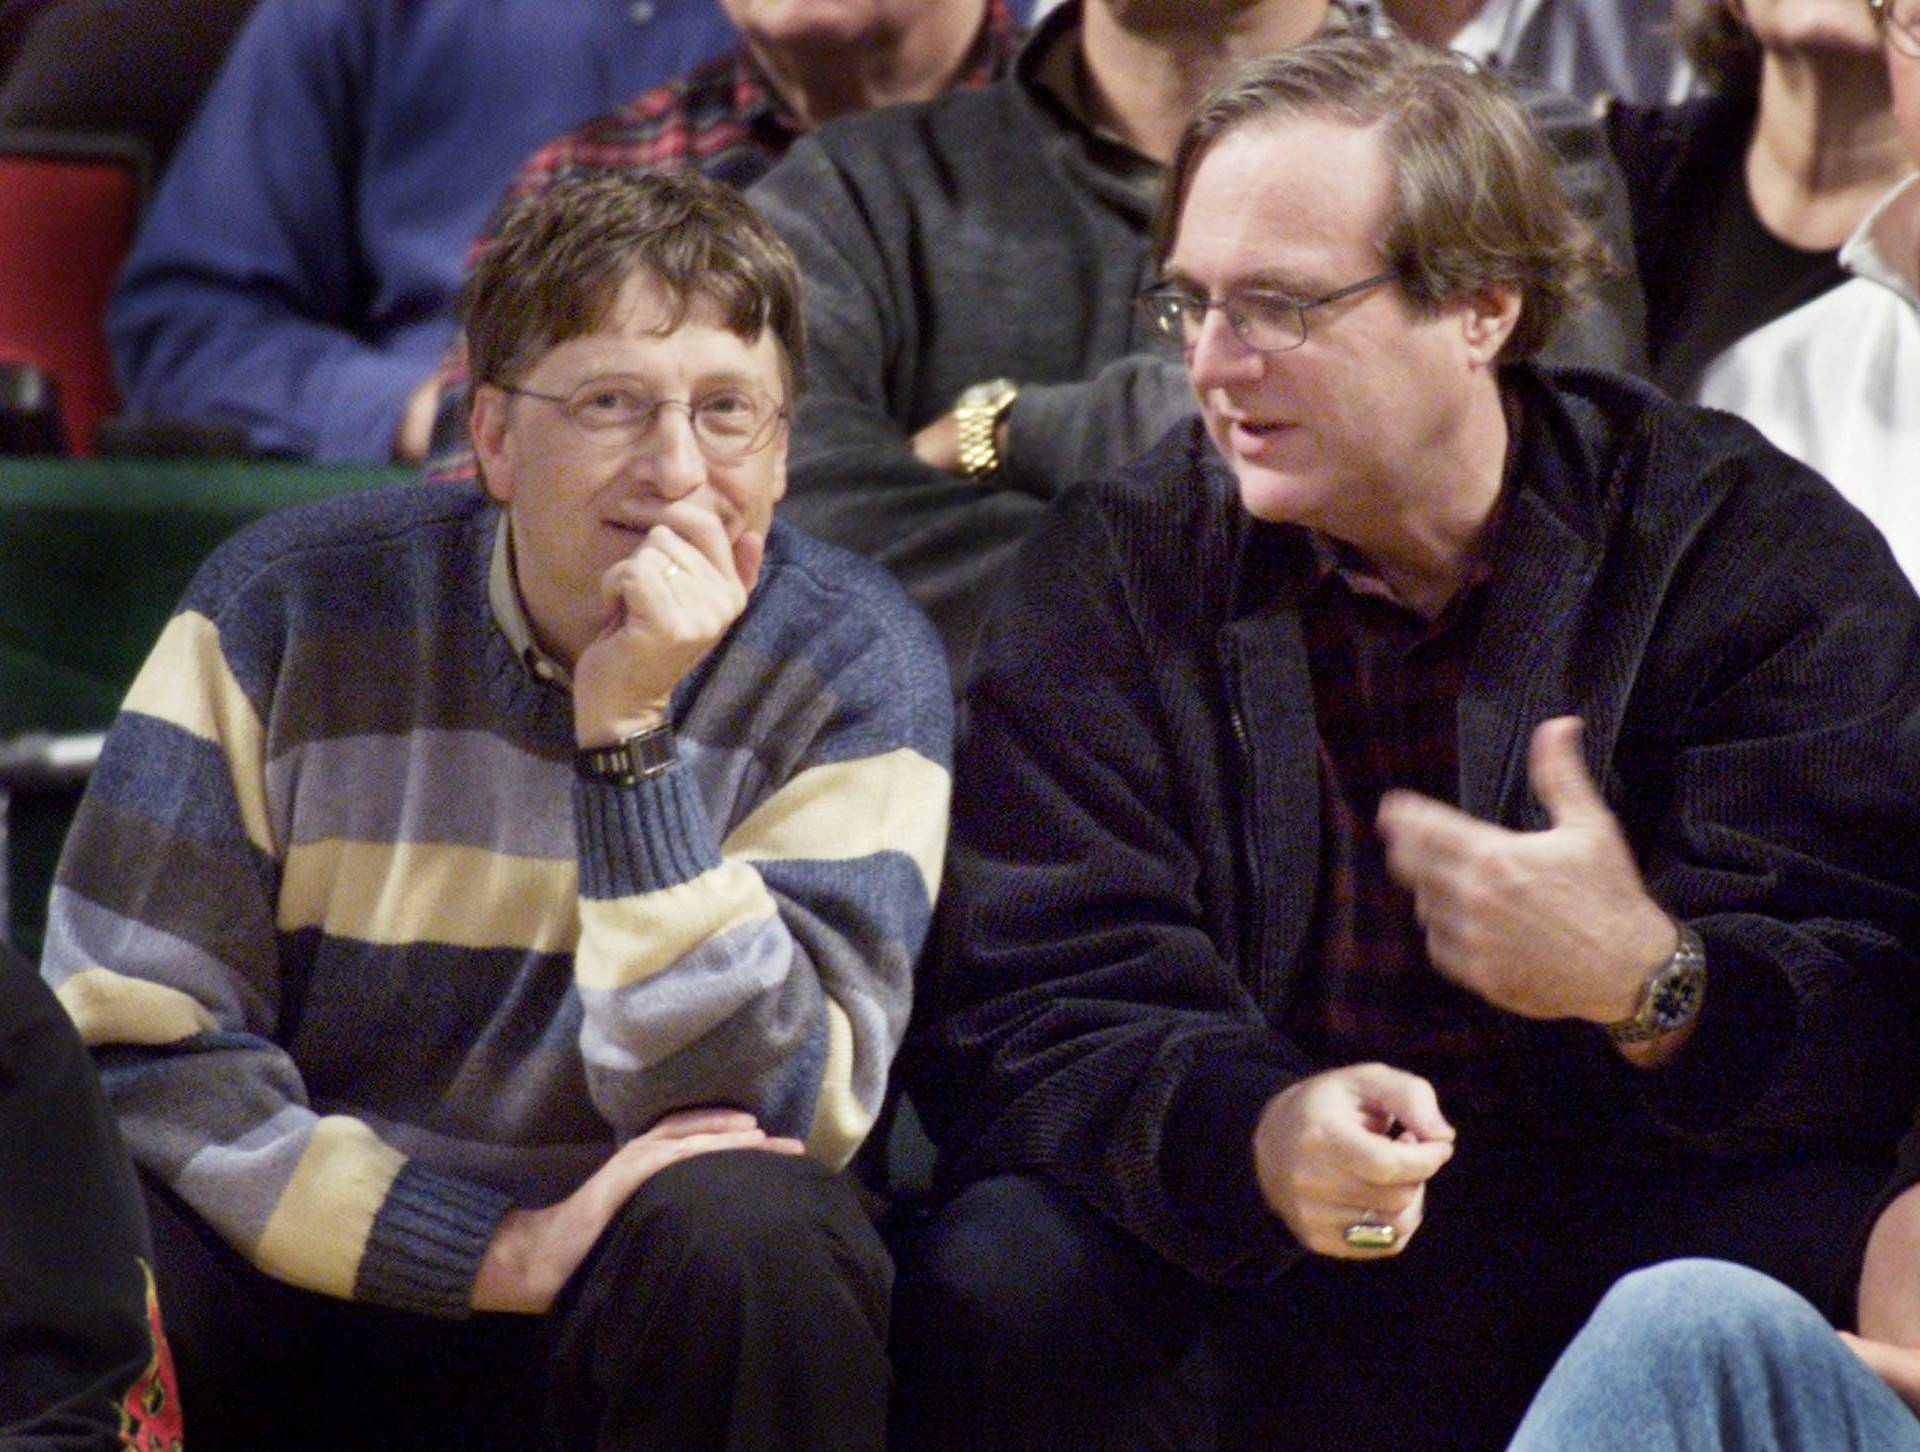 FILE PHOTO: MICROSOFT COFOUNDERS BILL GATES AND PAUL ALLEN WATCH BLAZERS PLAYSONICS.